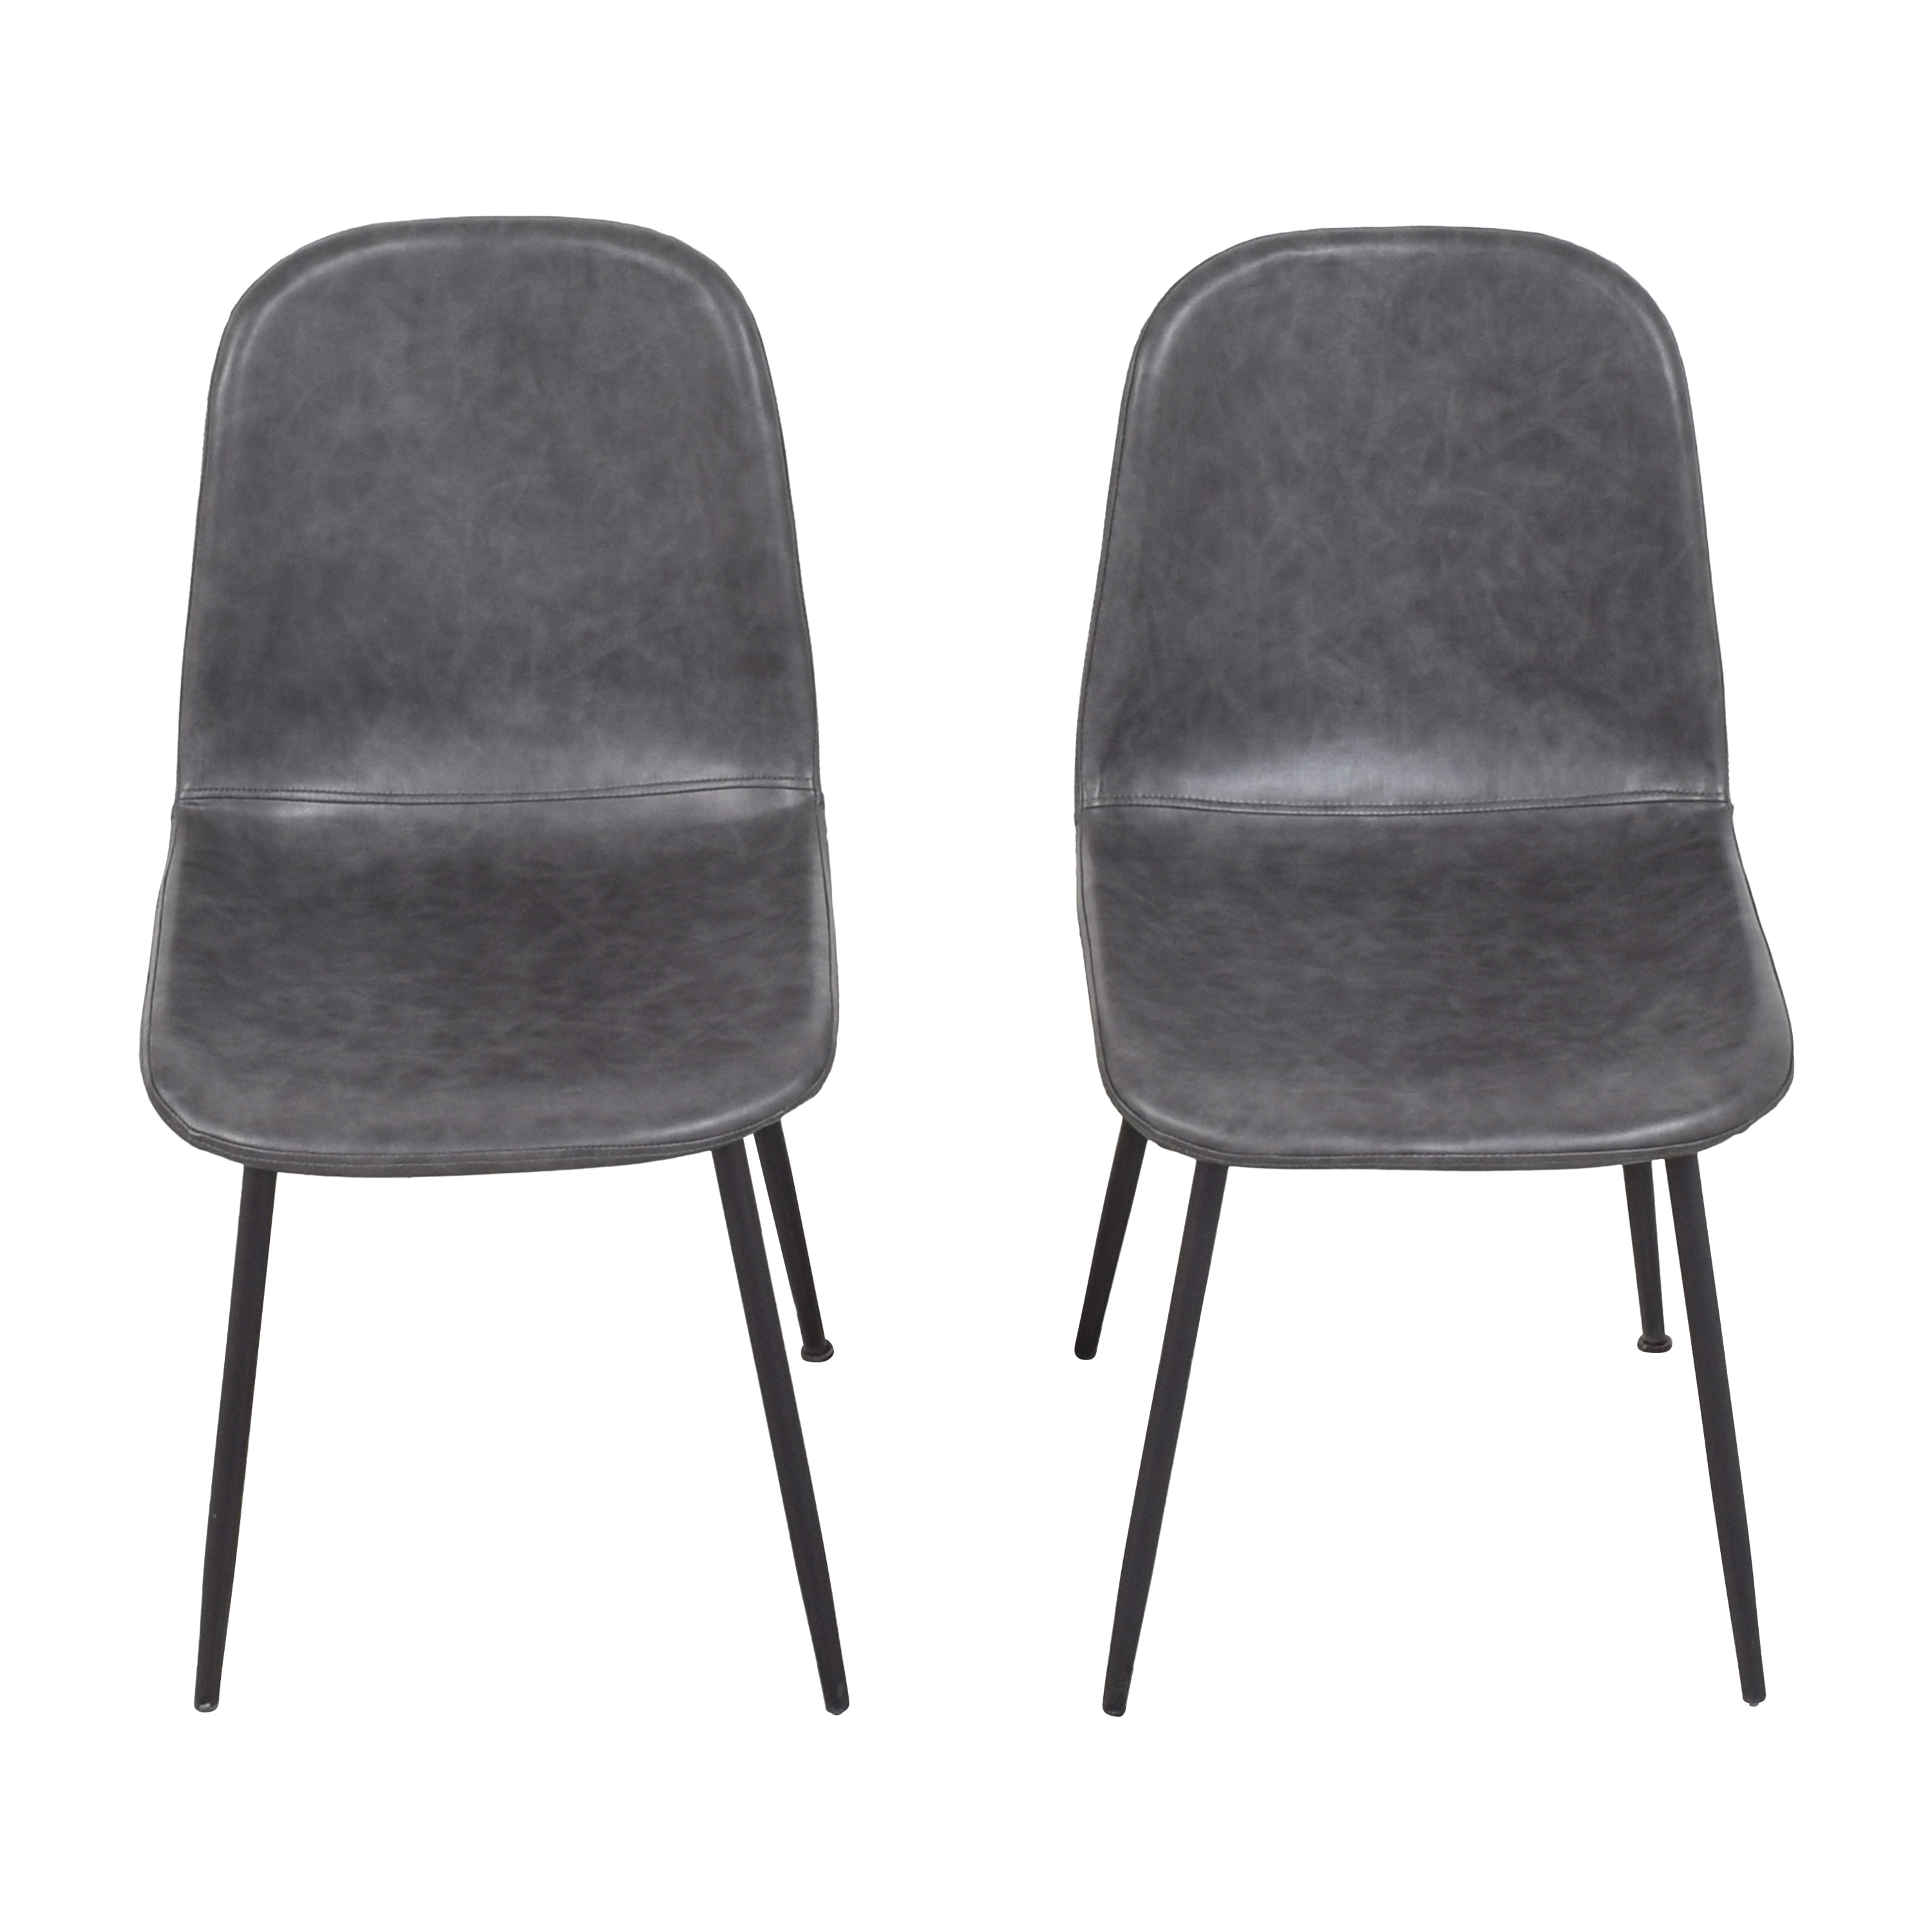 buy  Mid-Century Modern Style Dining Chairs online